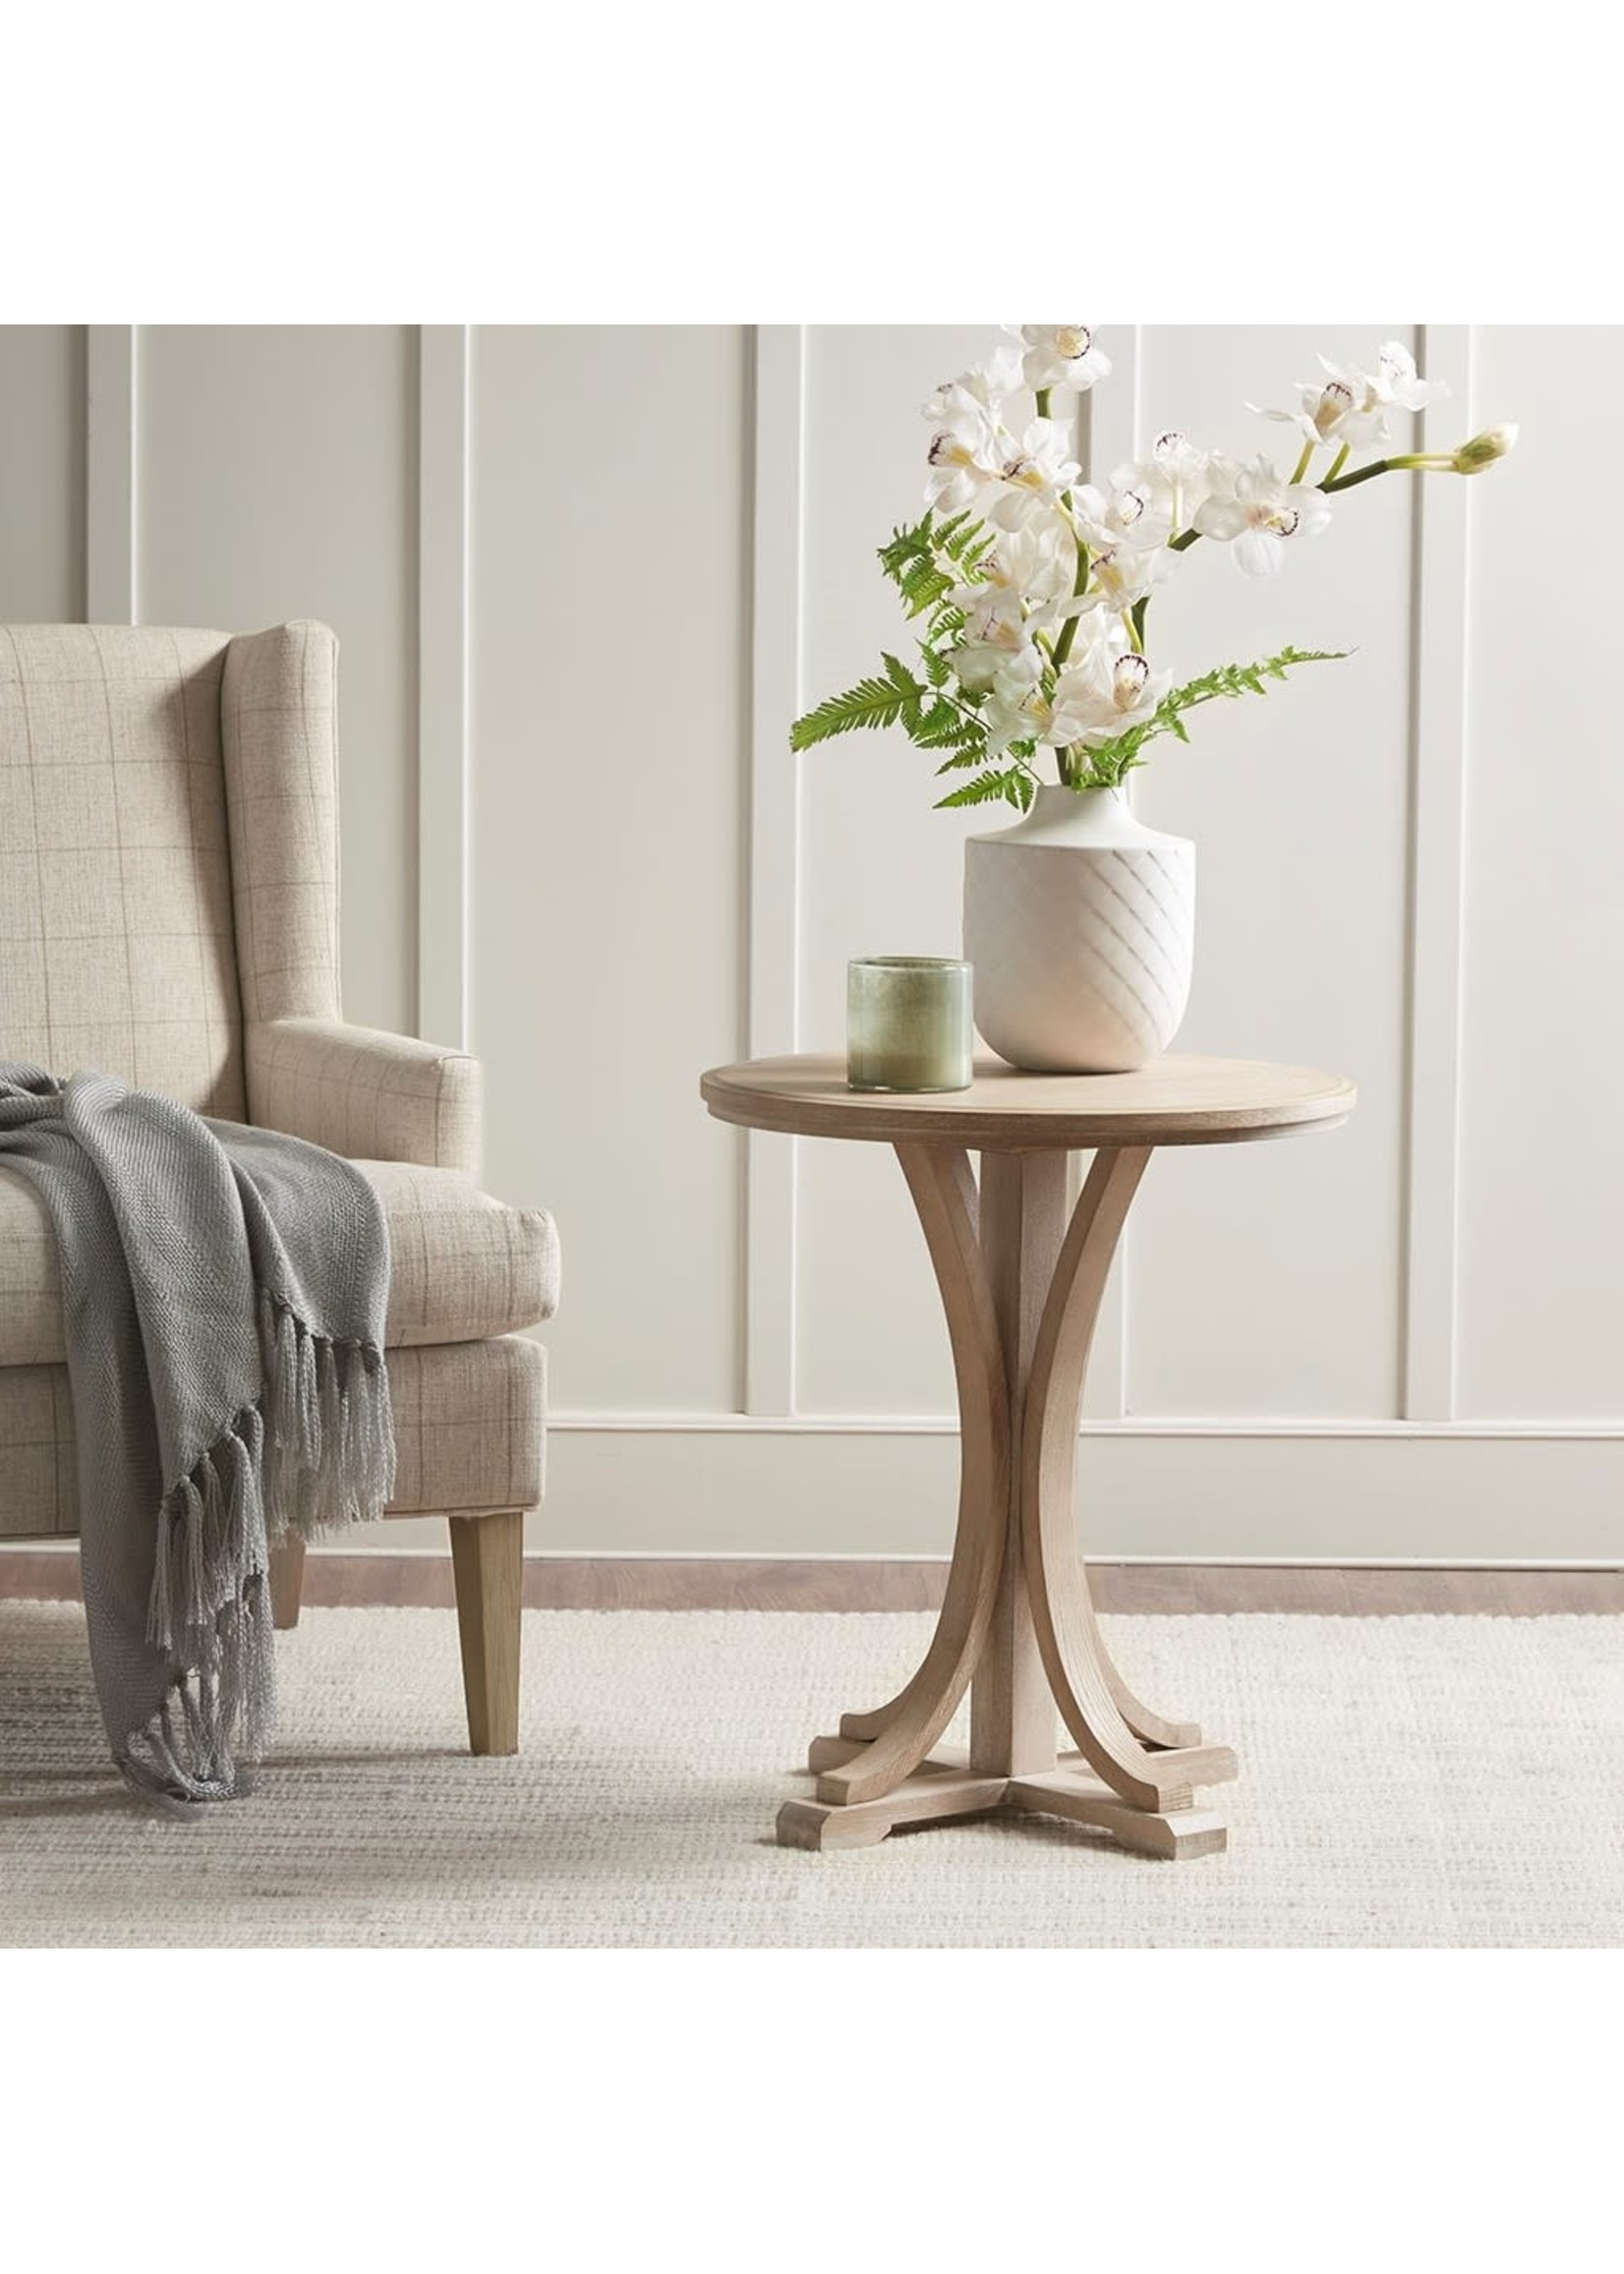 Olliix Fatima Round Accent Table Reclaimed Wood